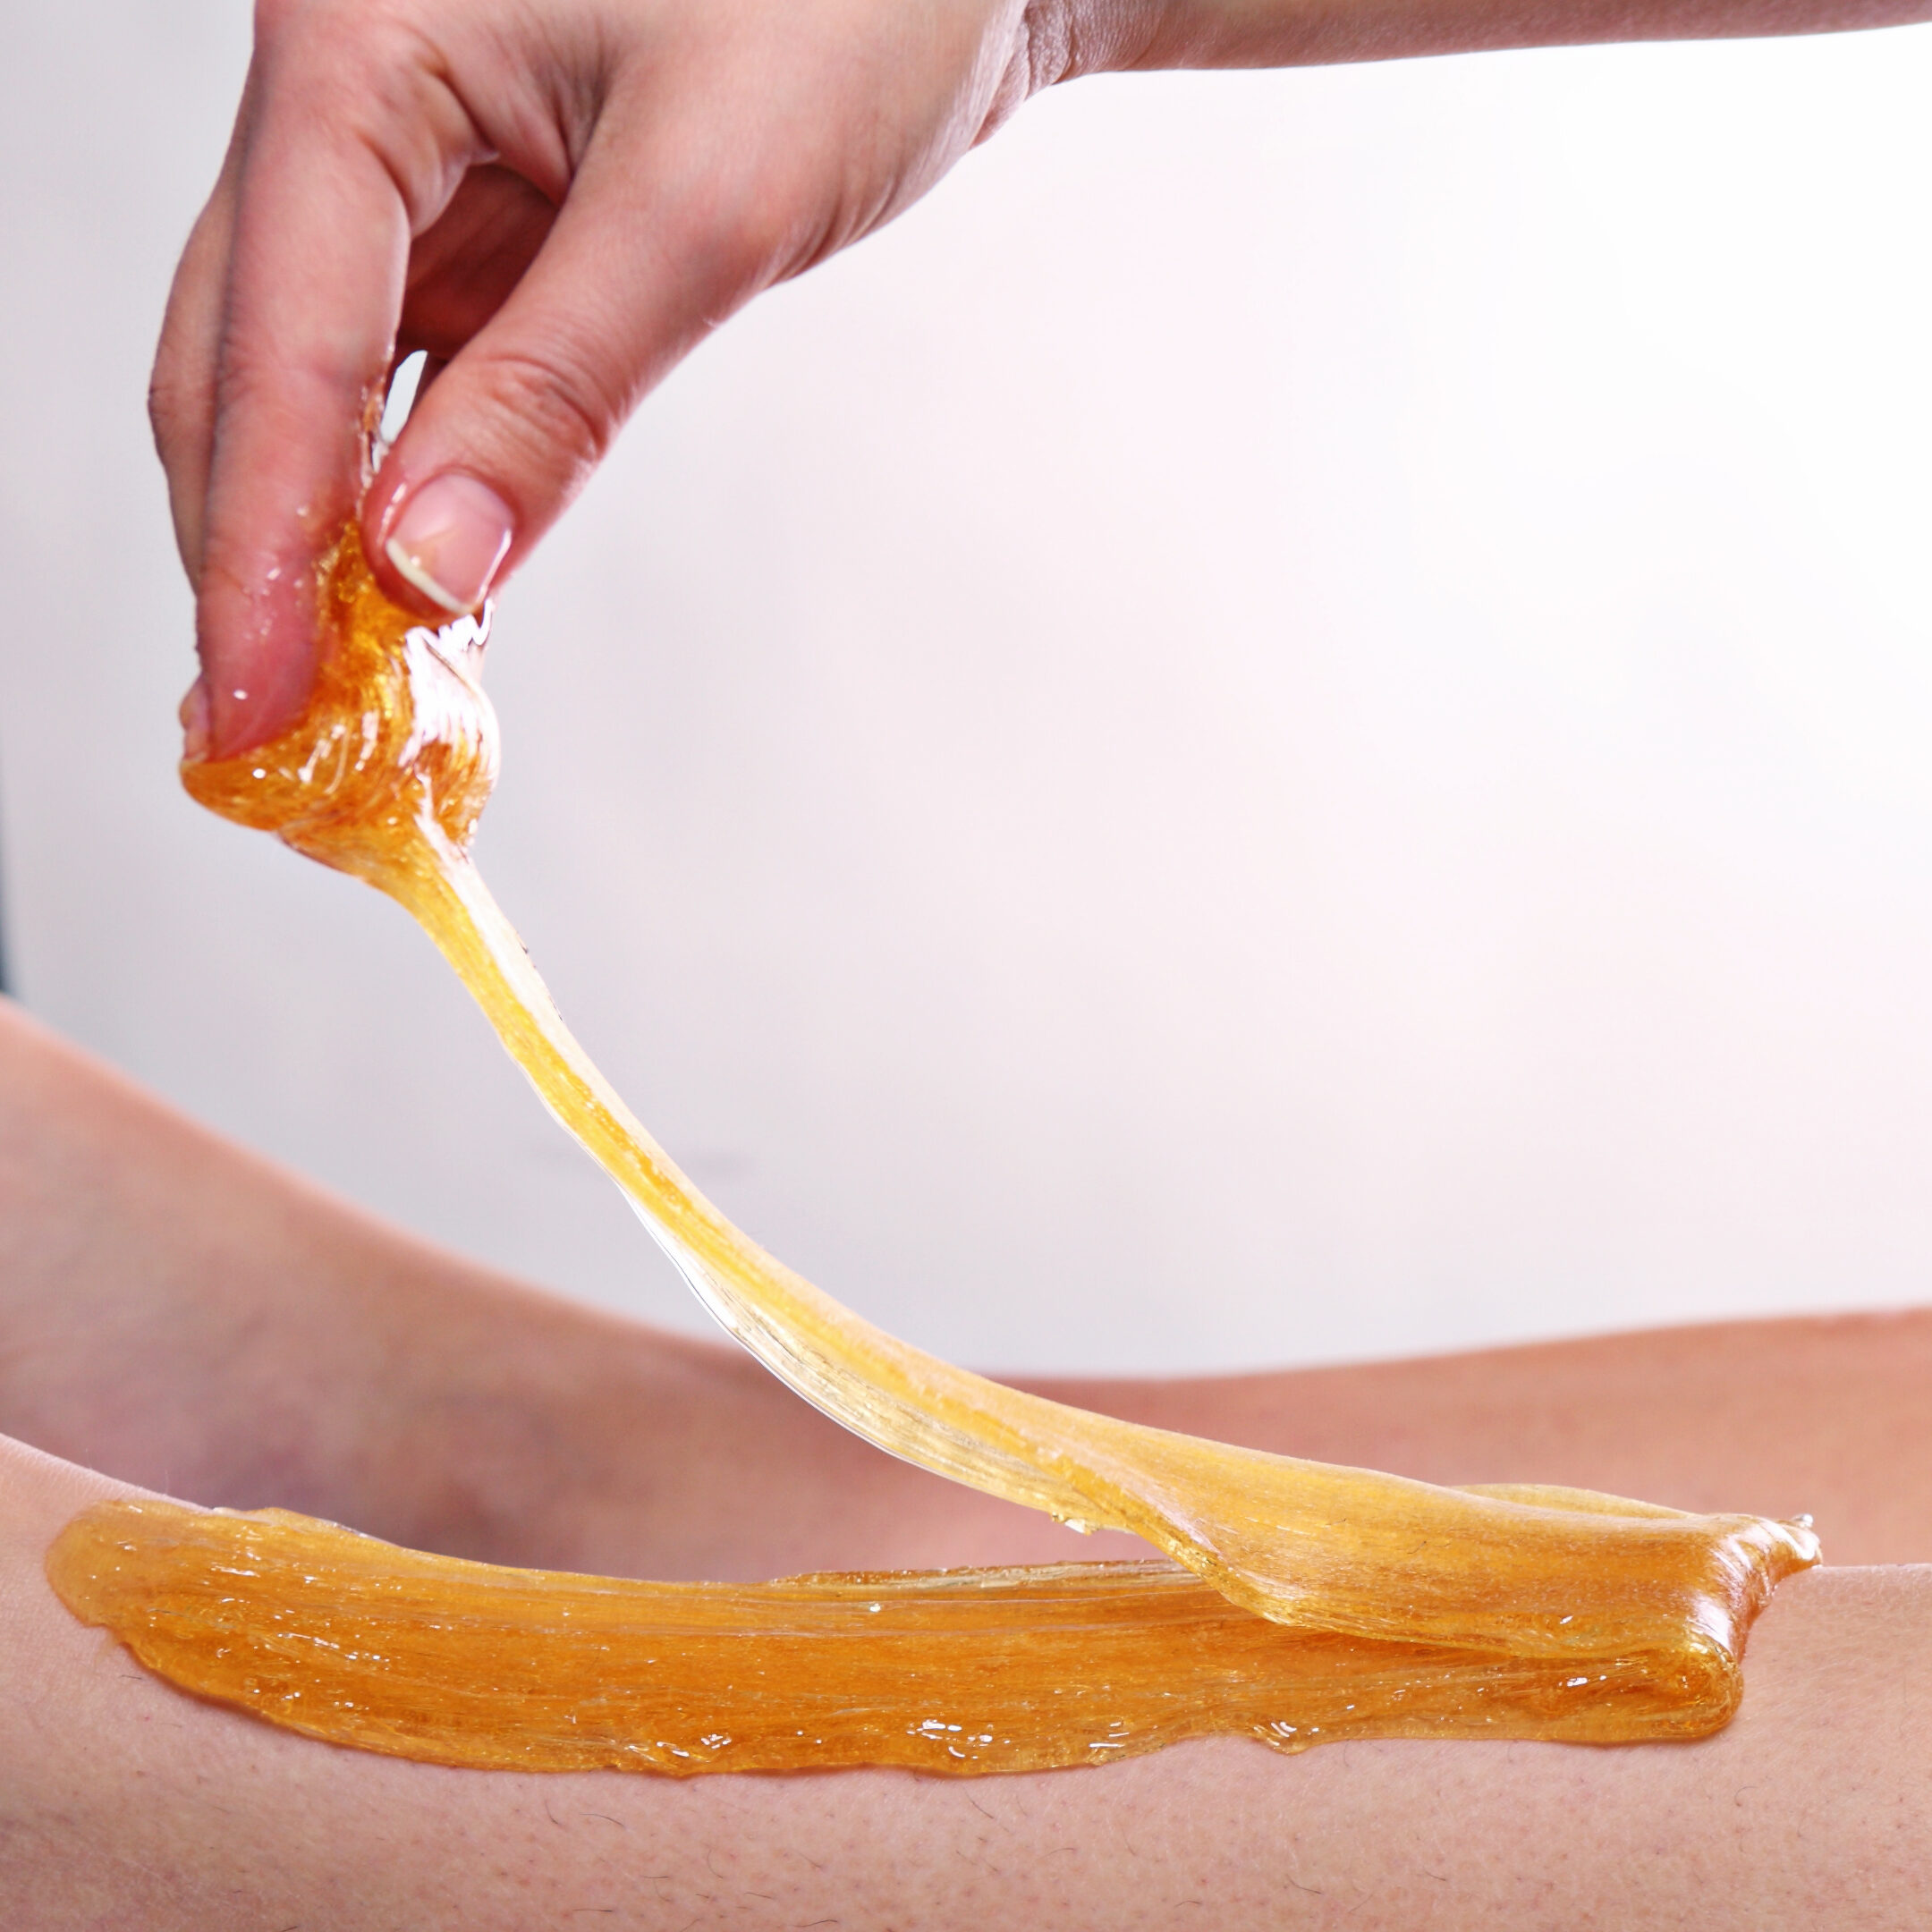 sugaring handtechnique